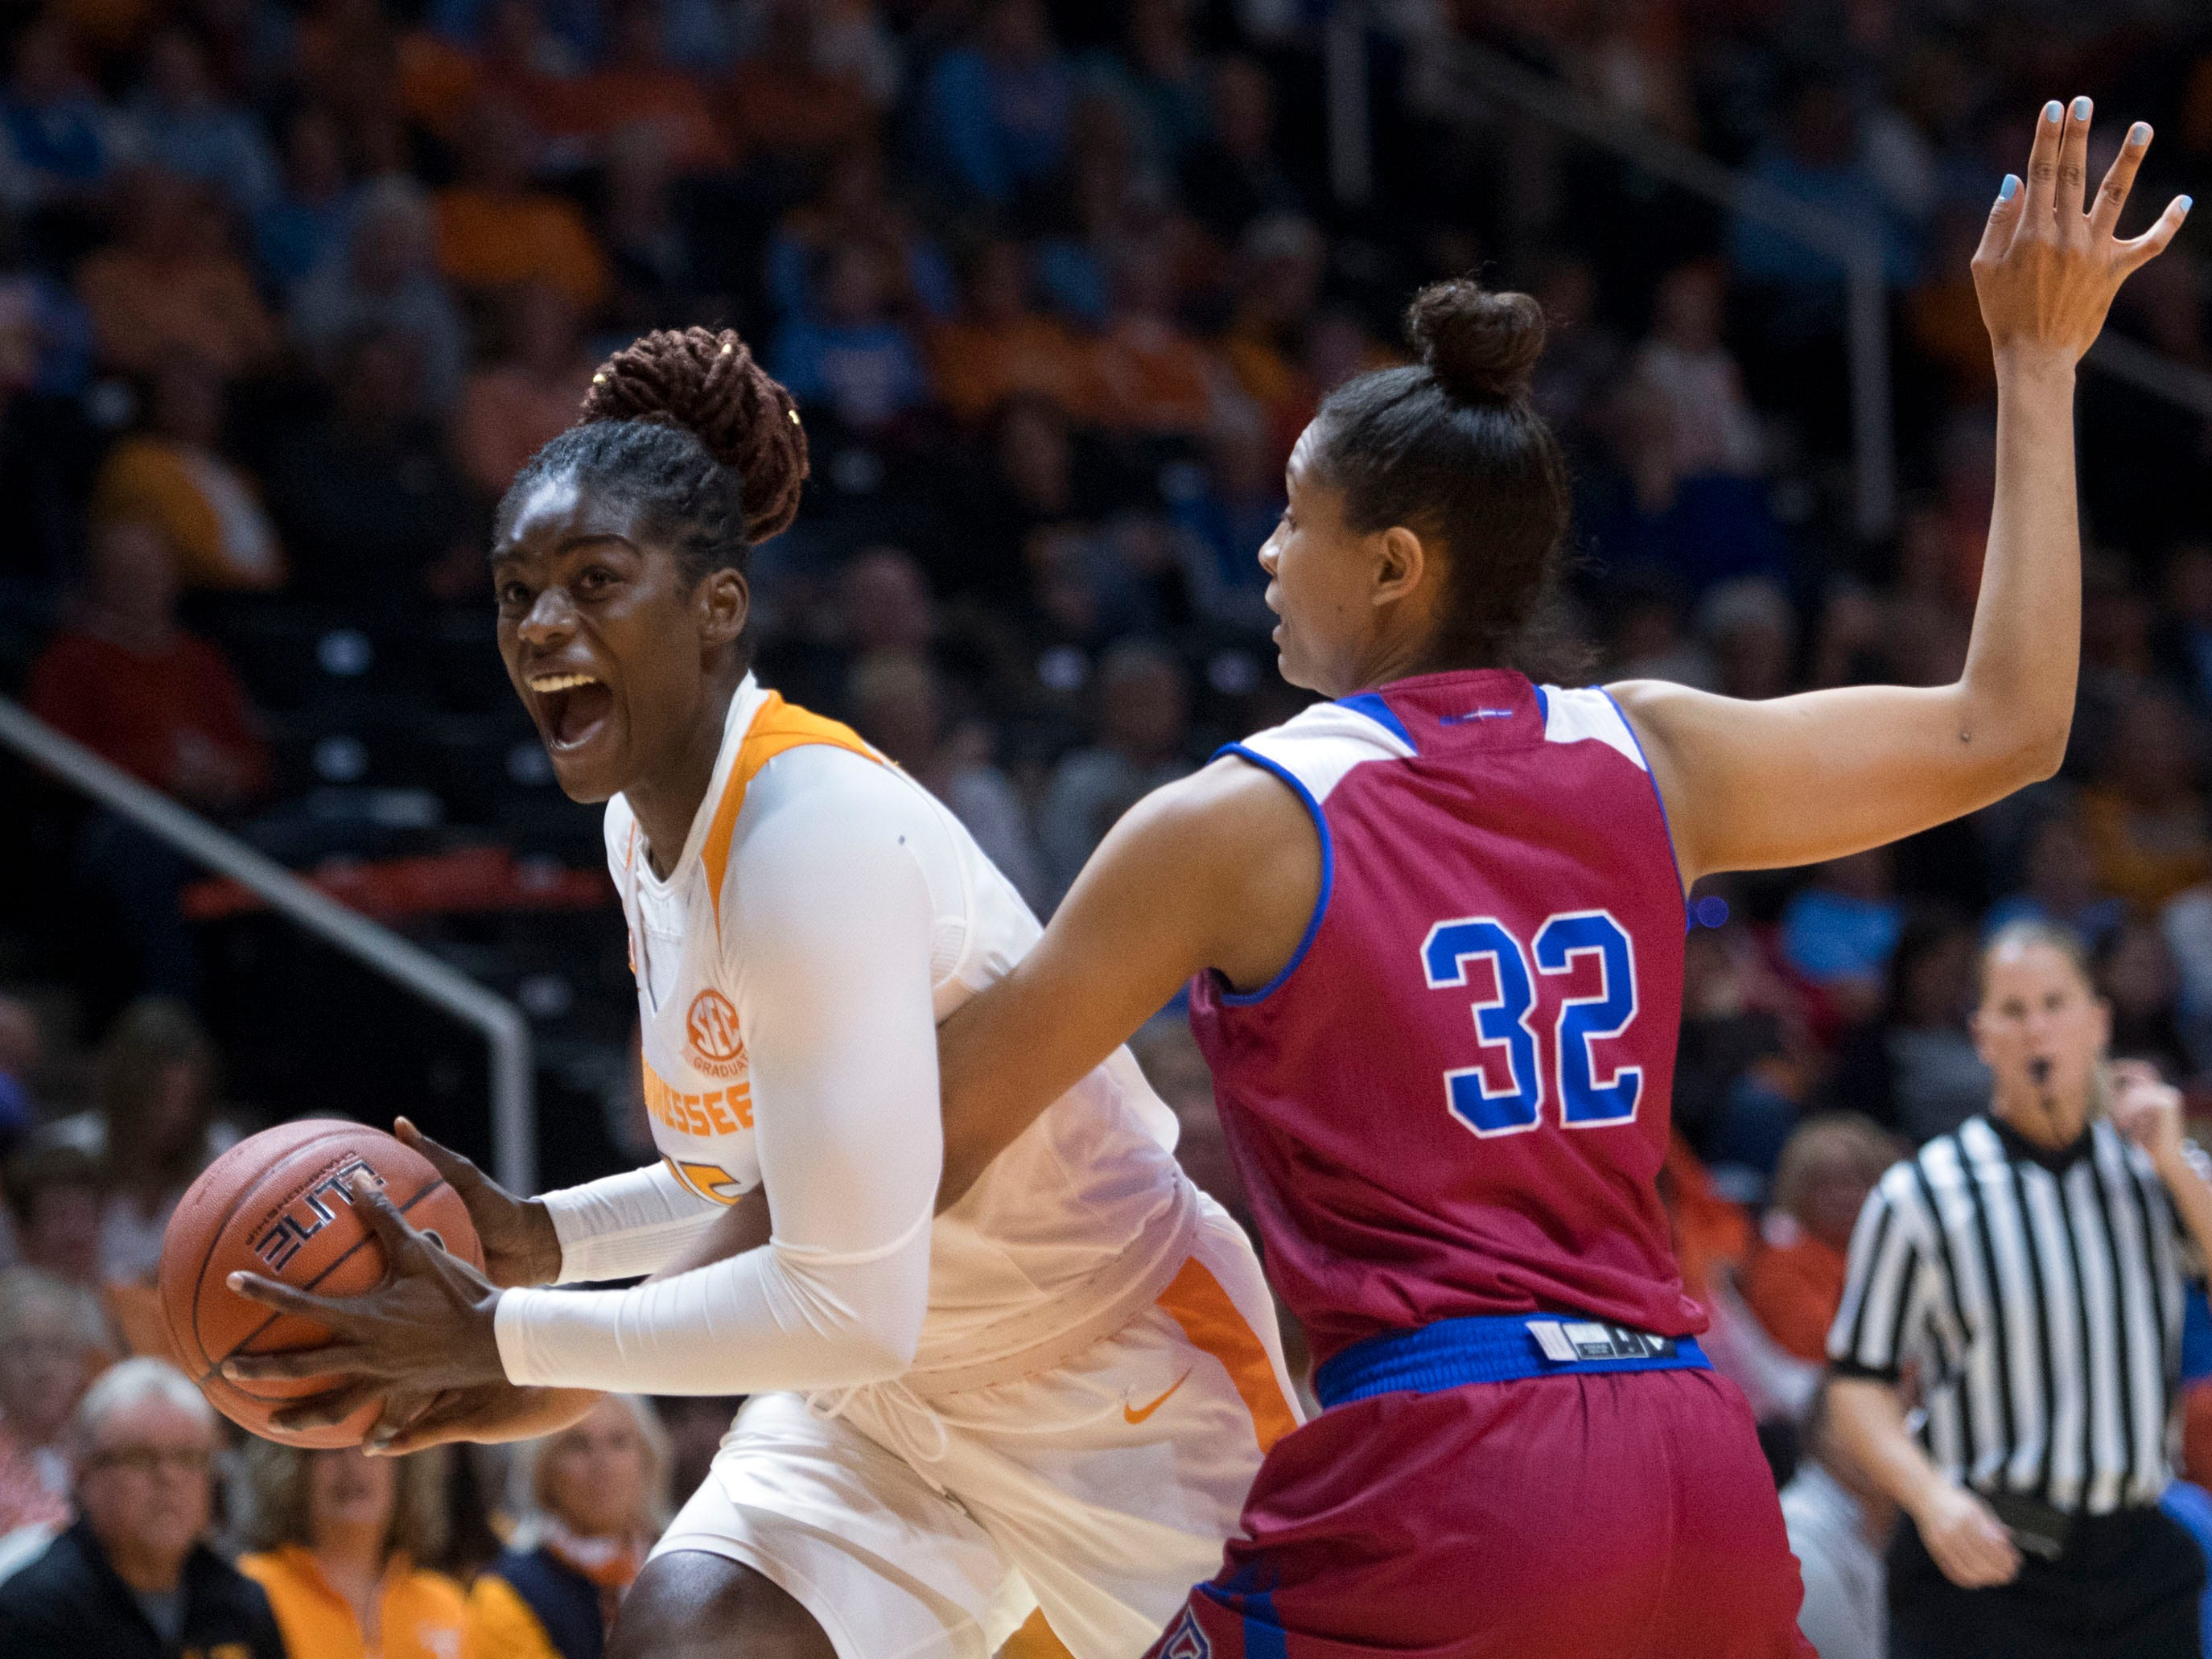 Tennessee's Cheridene Green (15) looks towards the basket while defended by Presbyterian's Kiara Jackson (22)  on Sunday, November 11, 2018.